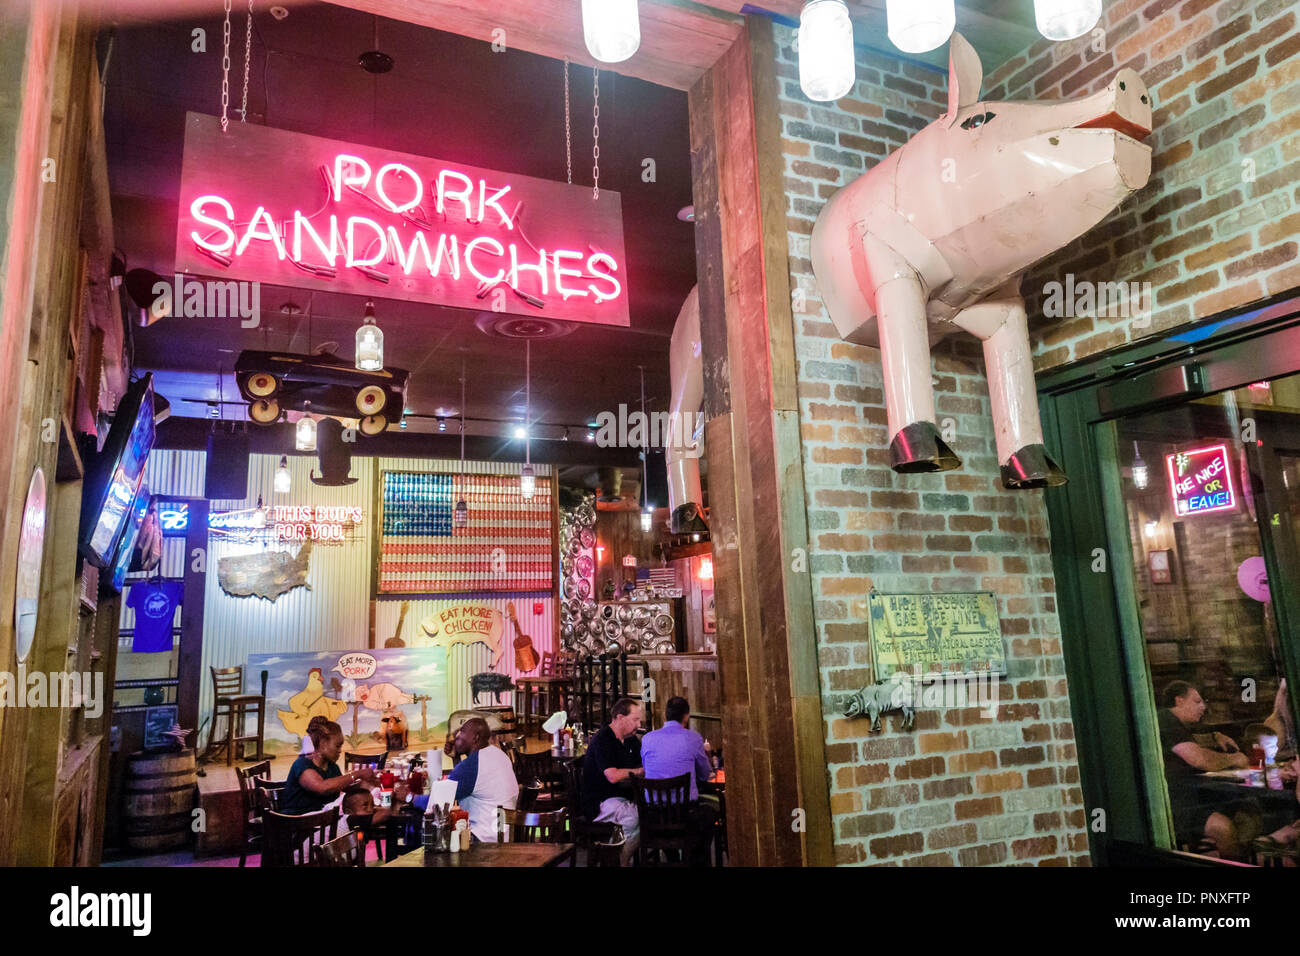 West Palm Beach Florida CityPlace Brother Jimmy's BBQ restaurant interior Americana - Stock Image